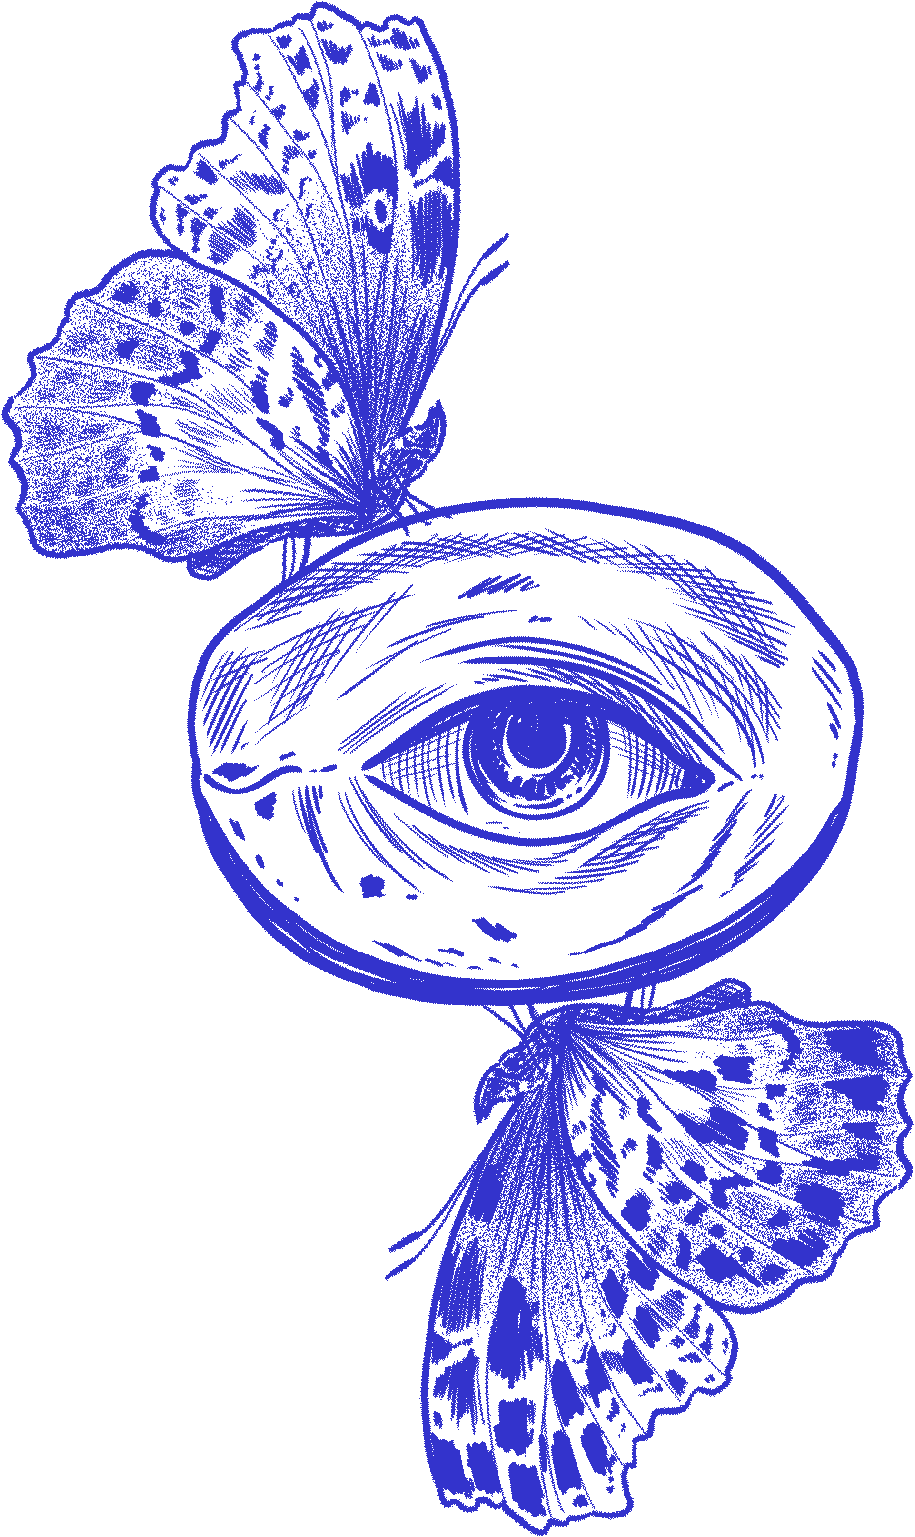 Florian Hirnhack Drawing of Eye with Butterflies